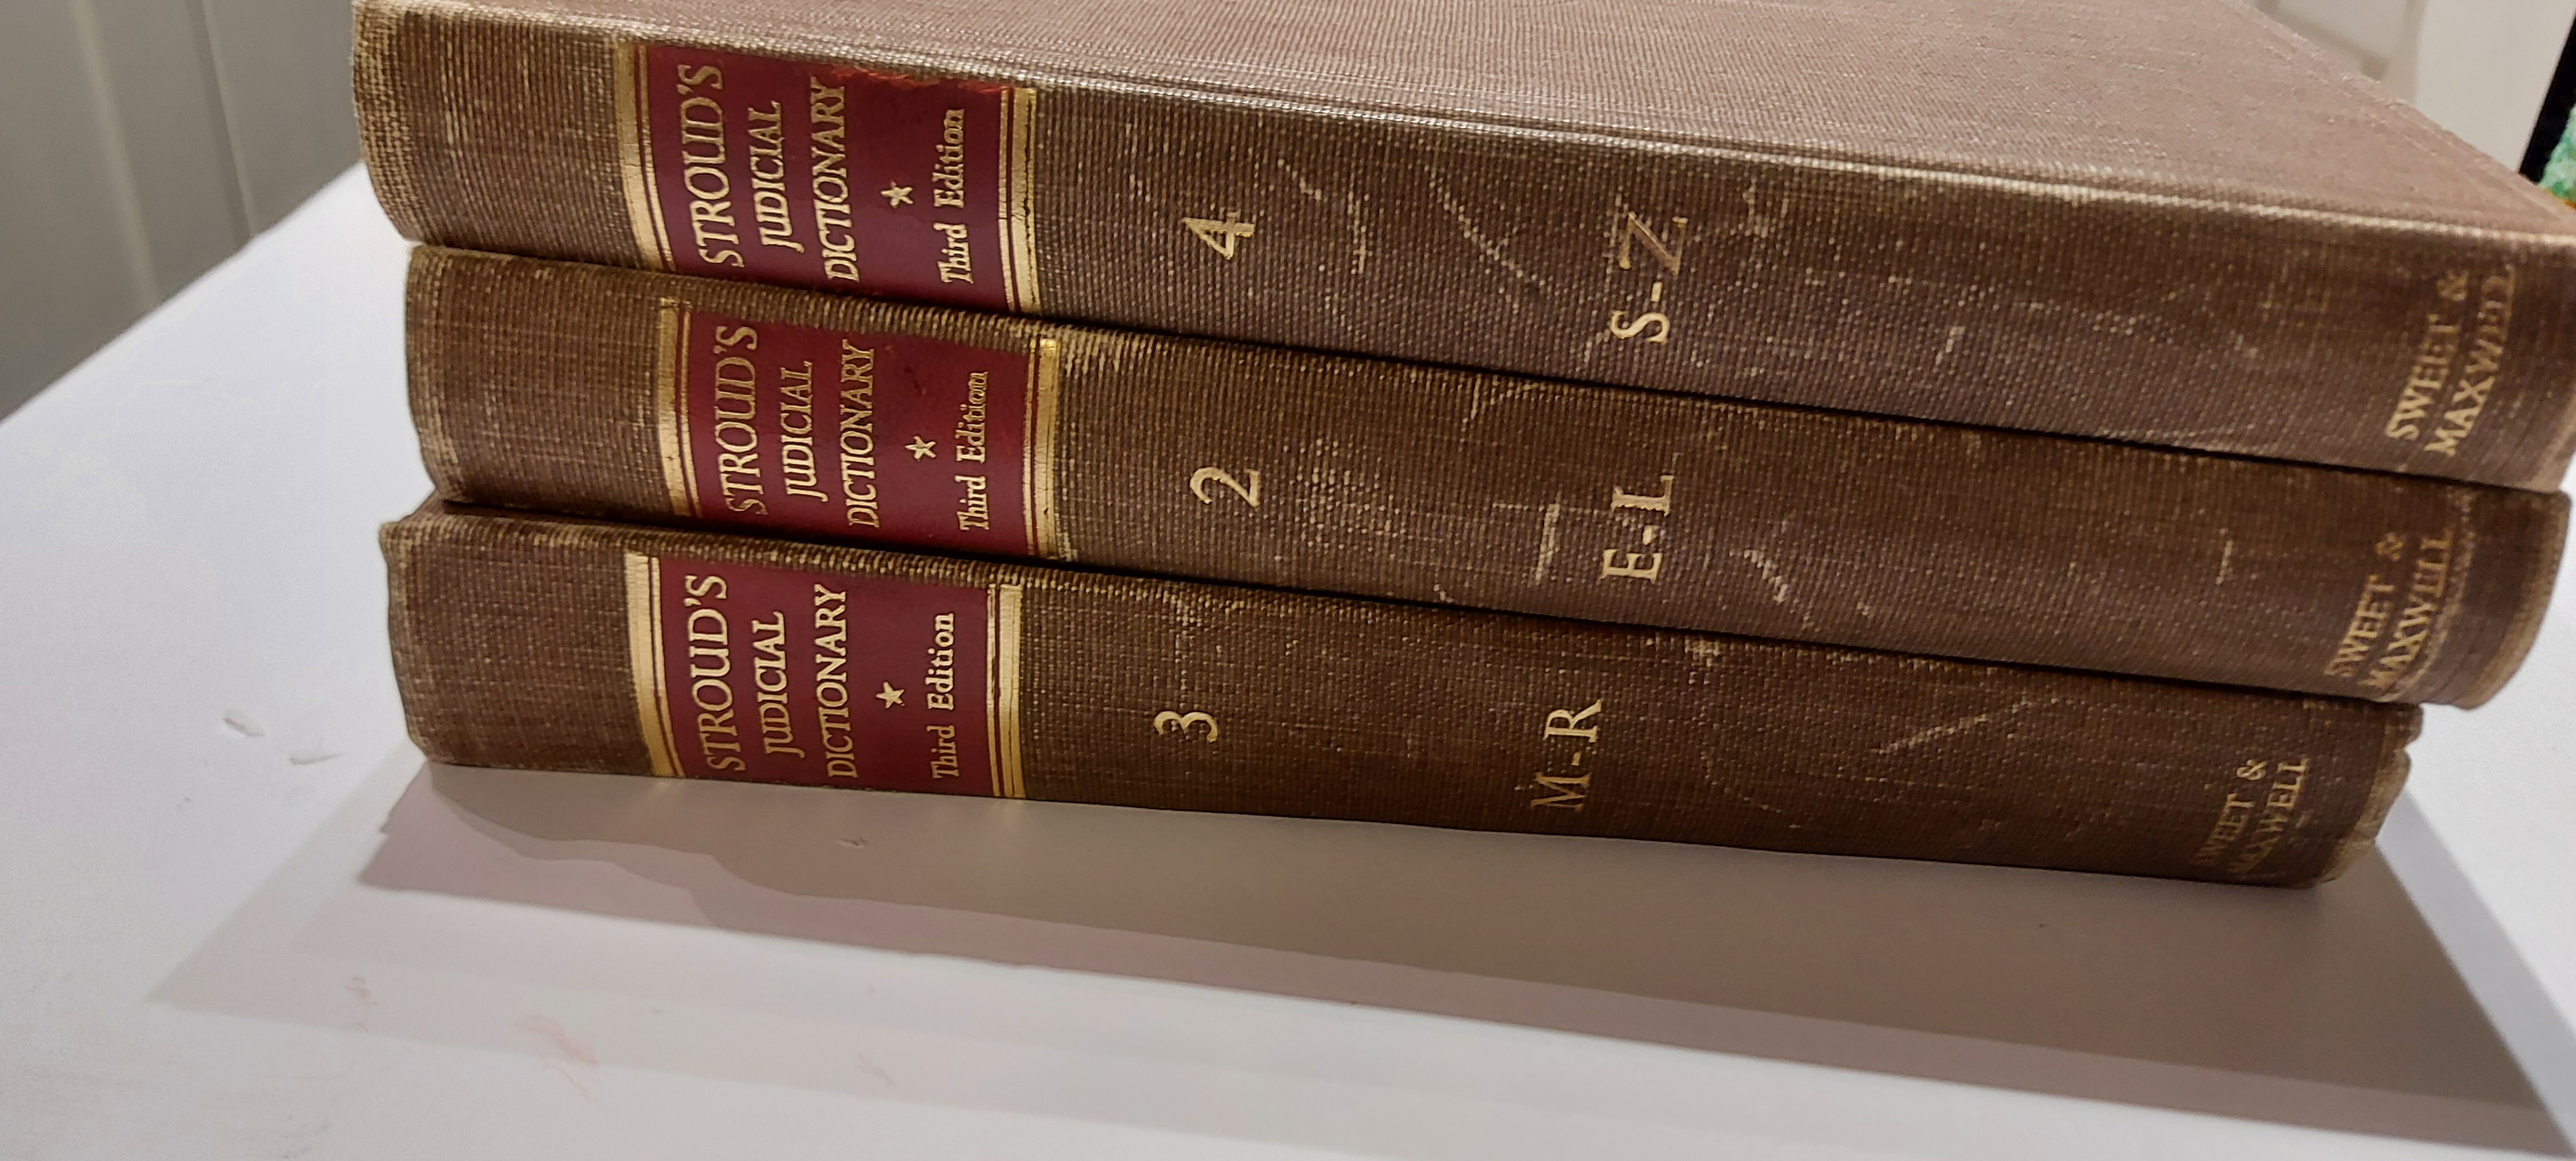 Stroud's Judicial Dictionary of Words And Phraes Vol. 2,3, and 4 Only by  Burke, John: As New Hardcover (1953) 3rd Edition   Mister-Seeker Books